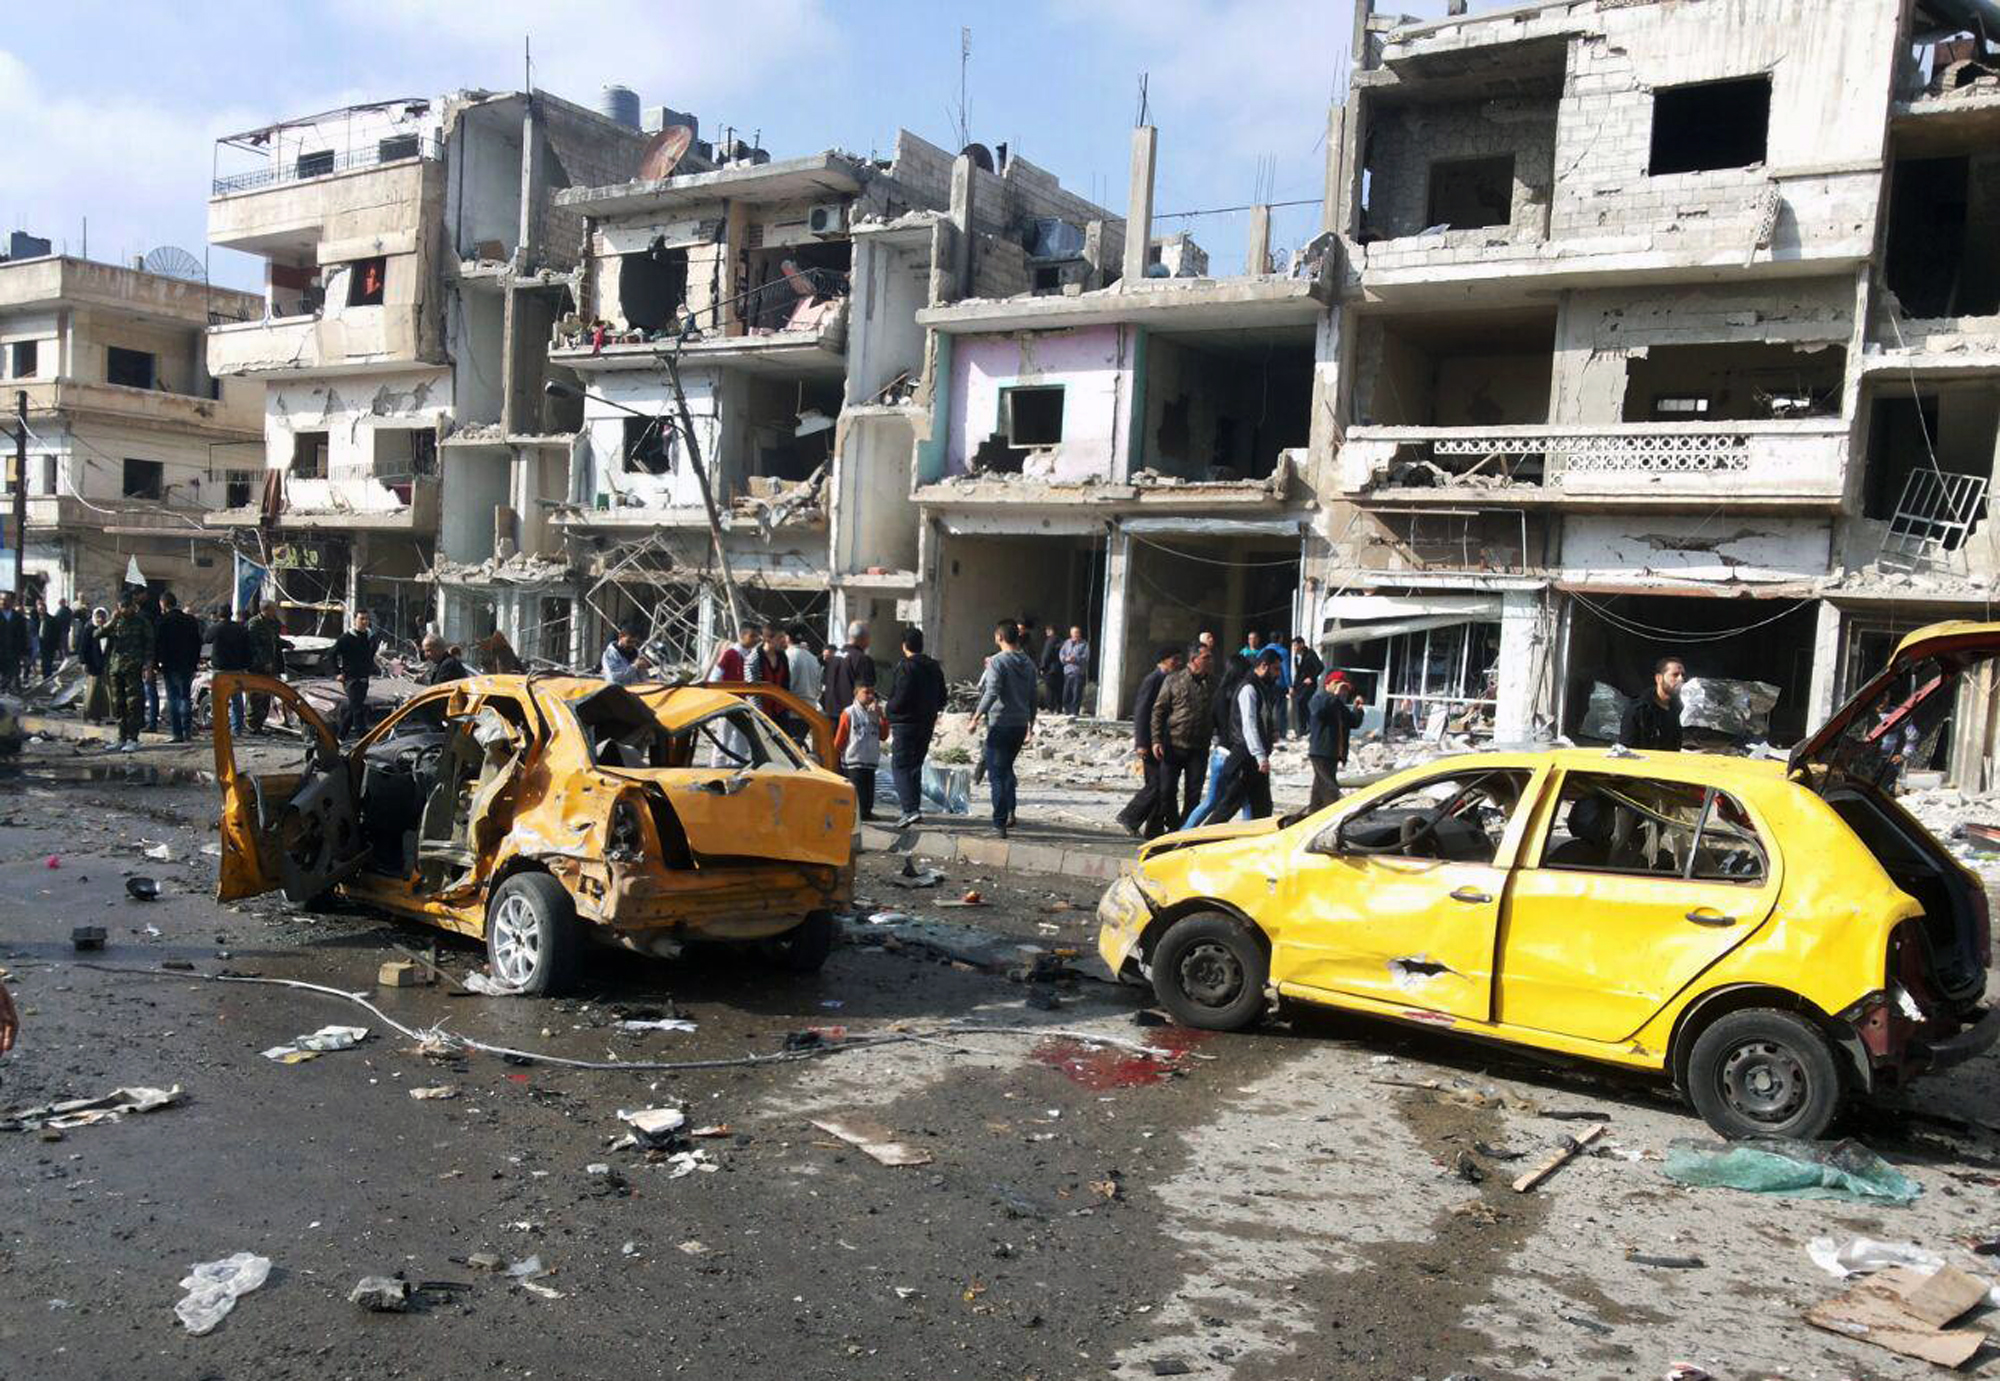 John Kerry Provisional Agreement Reached On Syria Cease Fire Wjla